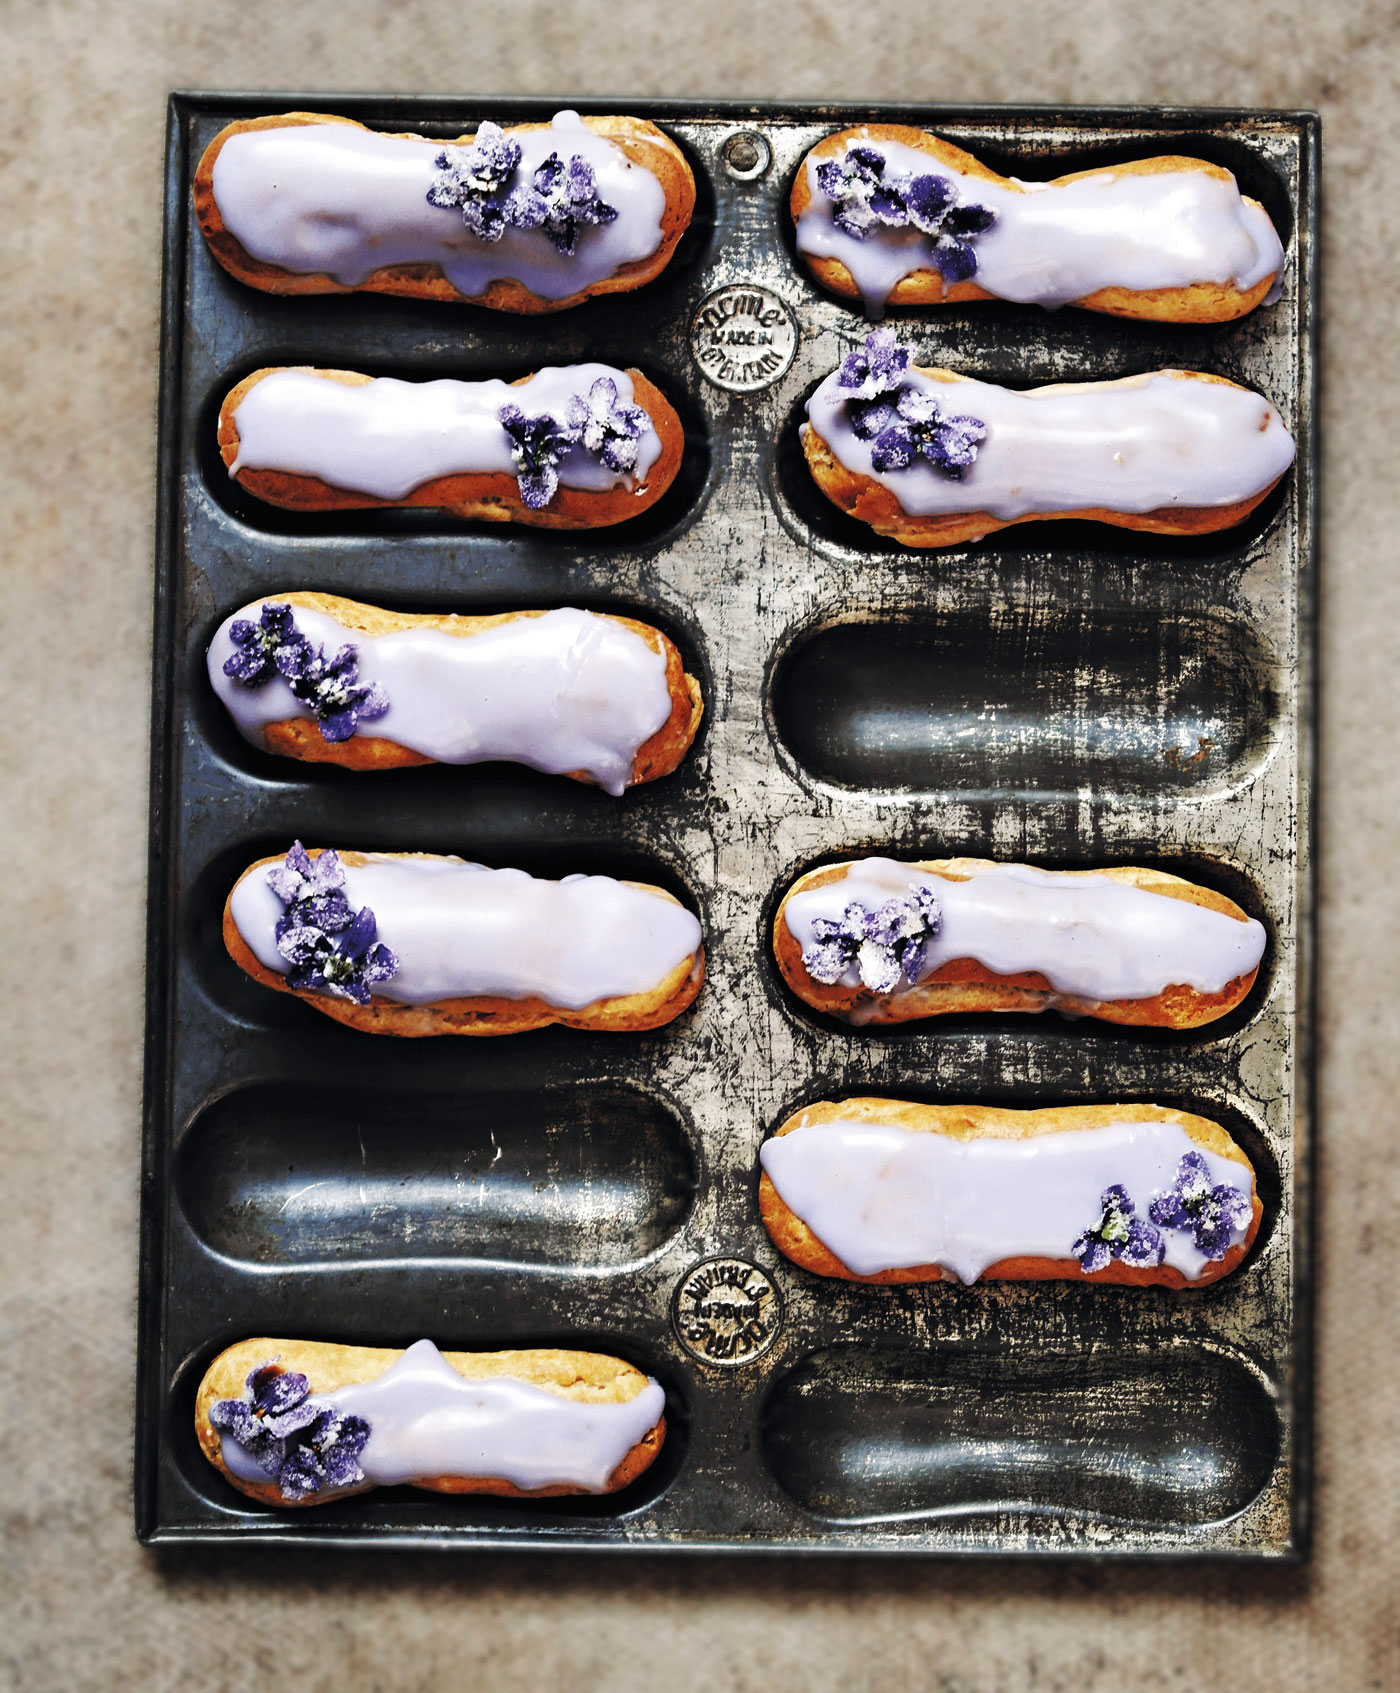 City Style and Living Magazine made with love recipe book violet eclairs finished